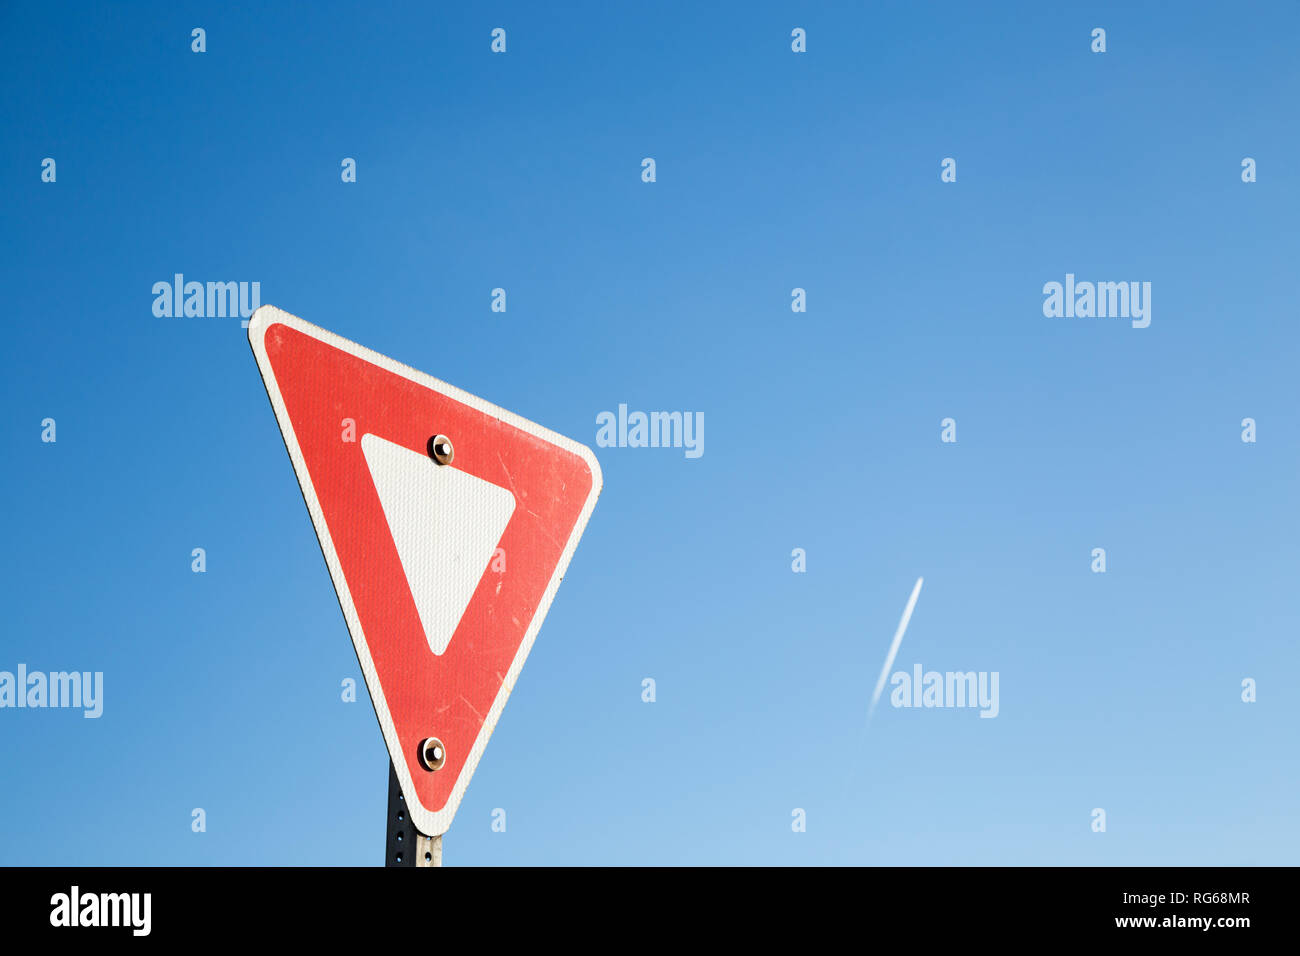 Yield sign against a blue sky with a contrail. - Stock Image